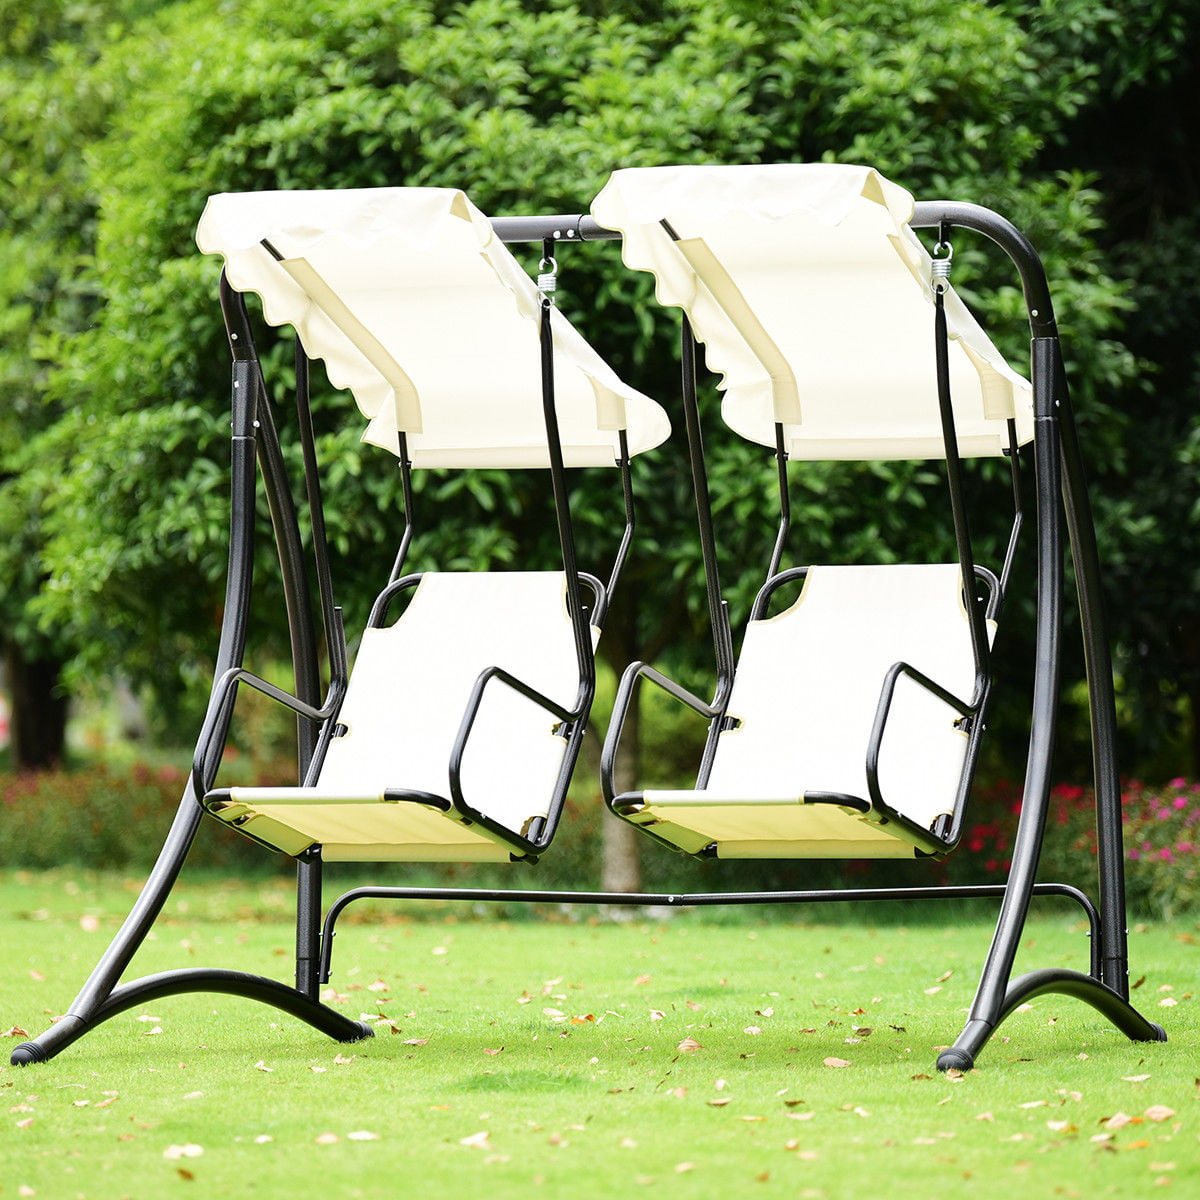 Patio Outdoor 3 Person Hanging Canopy Swing Chair Hammock Seat Sofa Coffee White